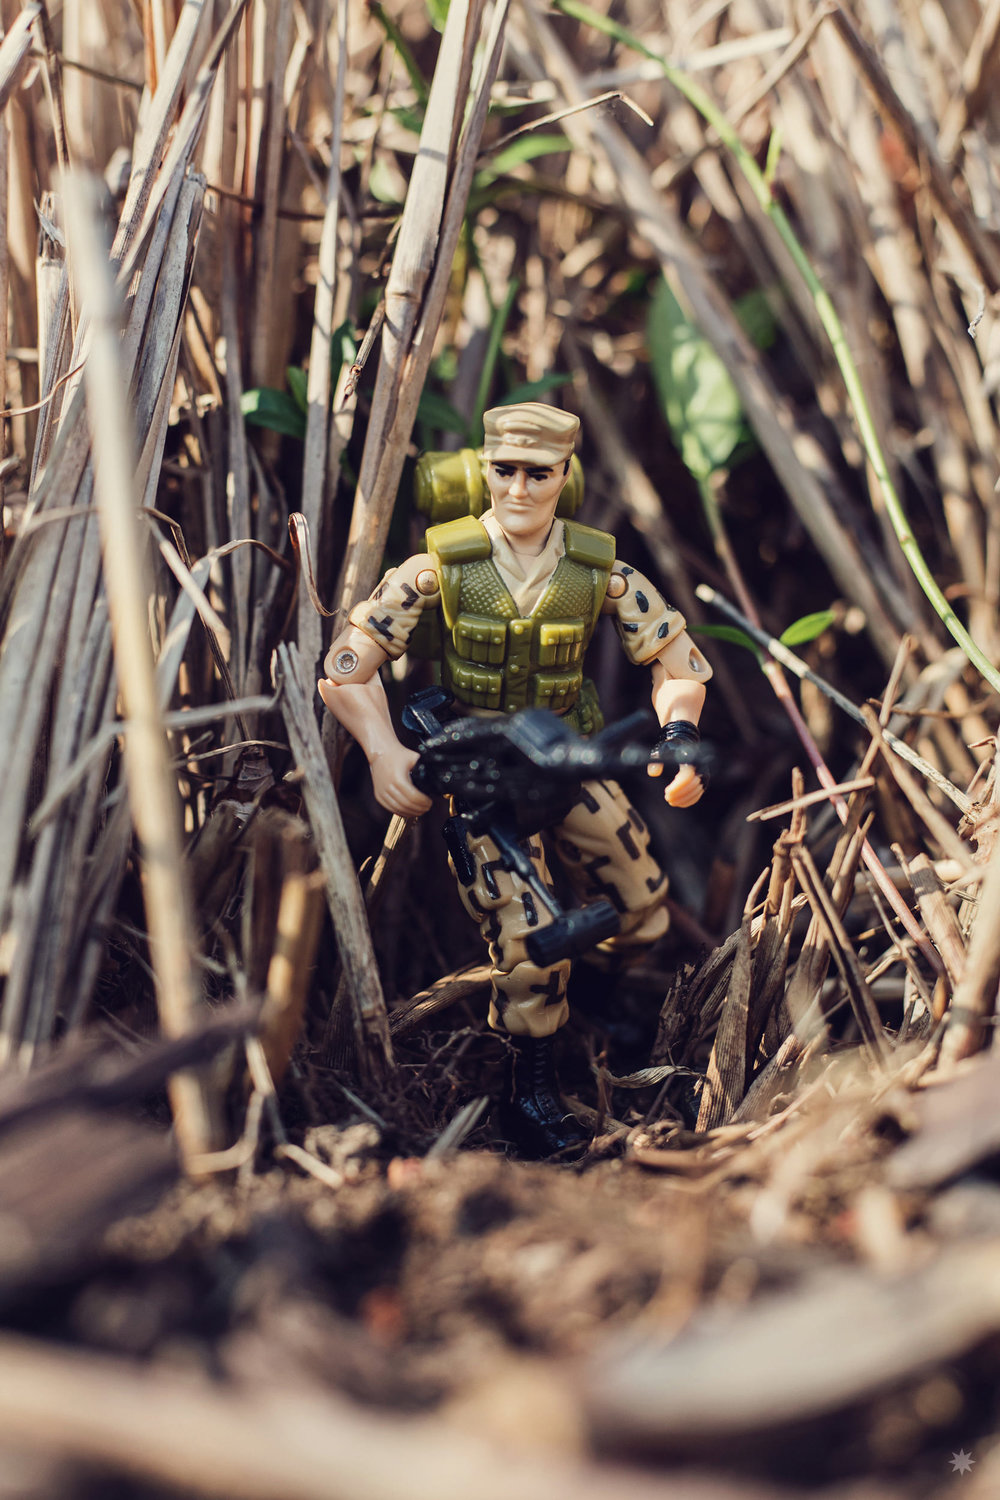 gi-joe-repeater-1987-yojoe-toy-action-figure-photo-photography.jpg